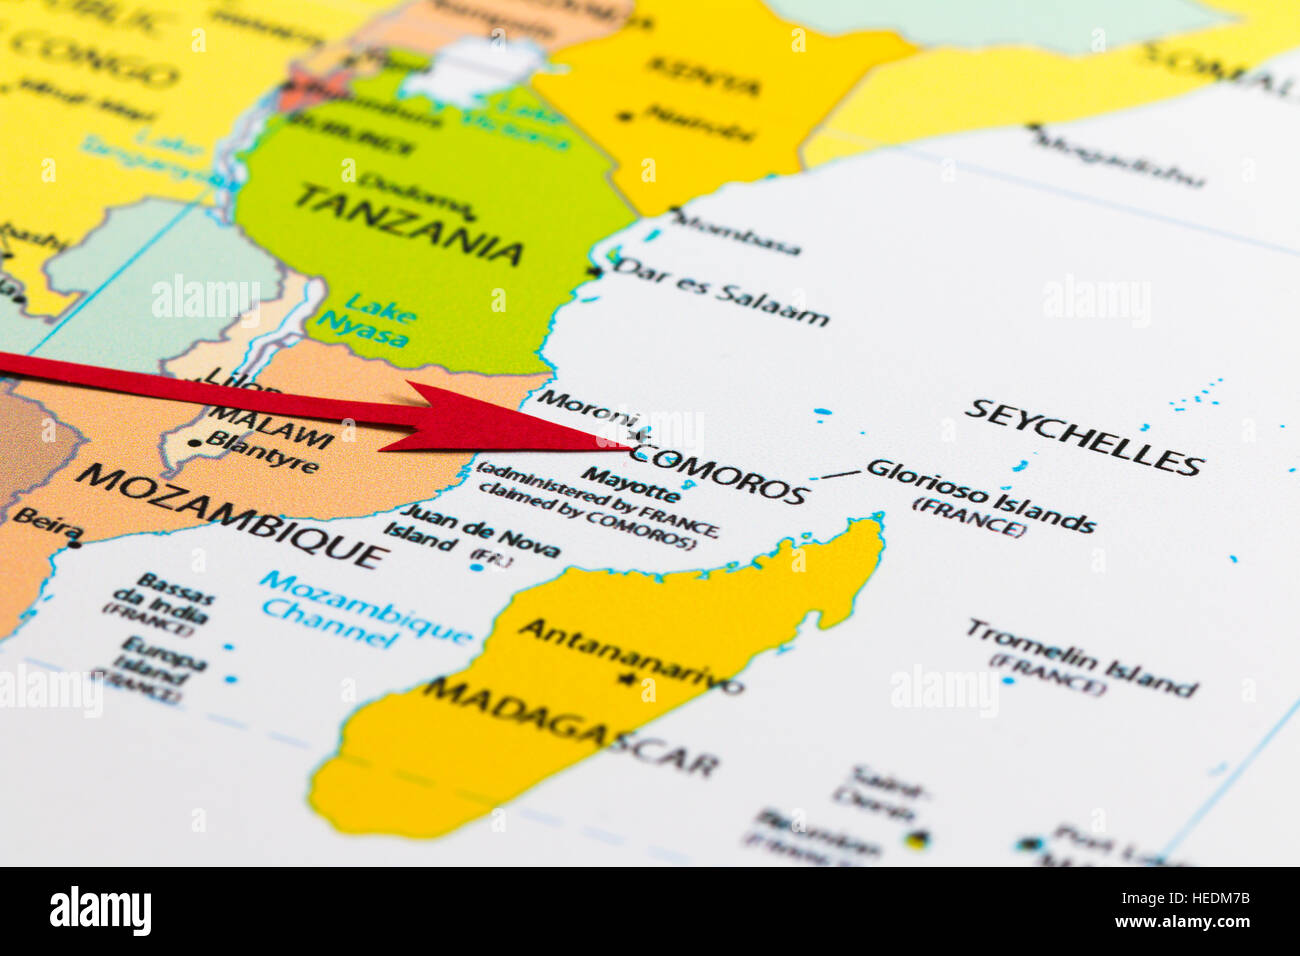 Comoros Stock Photos Comoros Stock Images Alamy